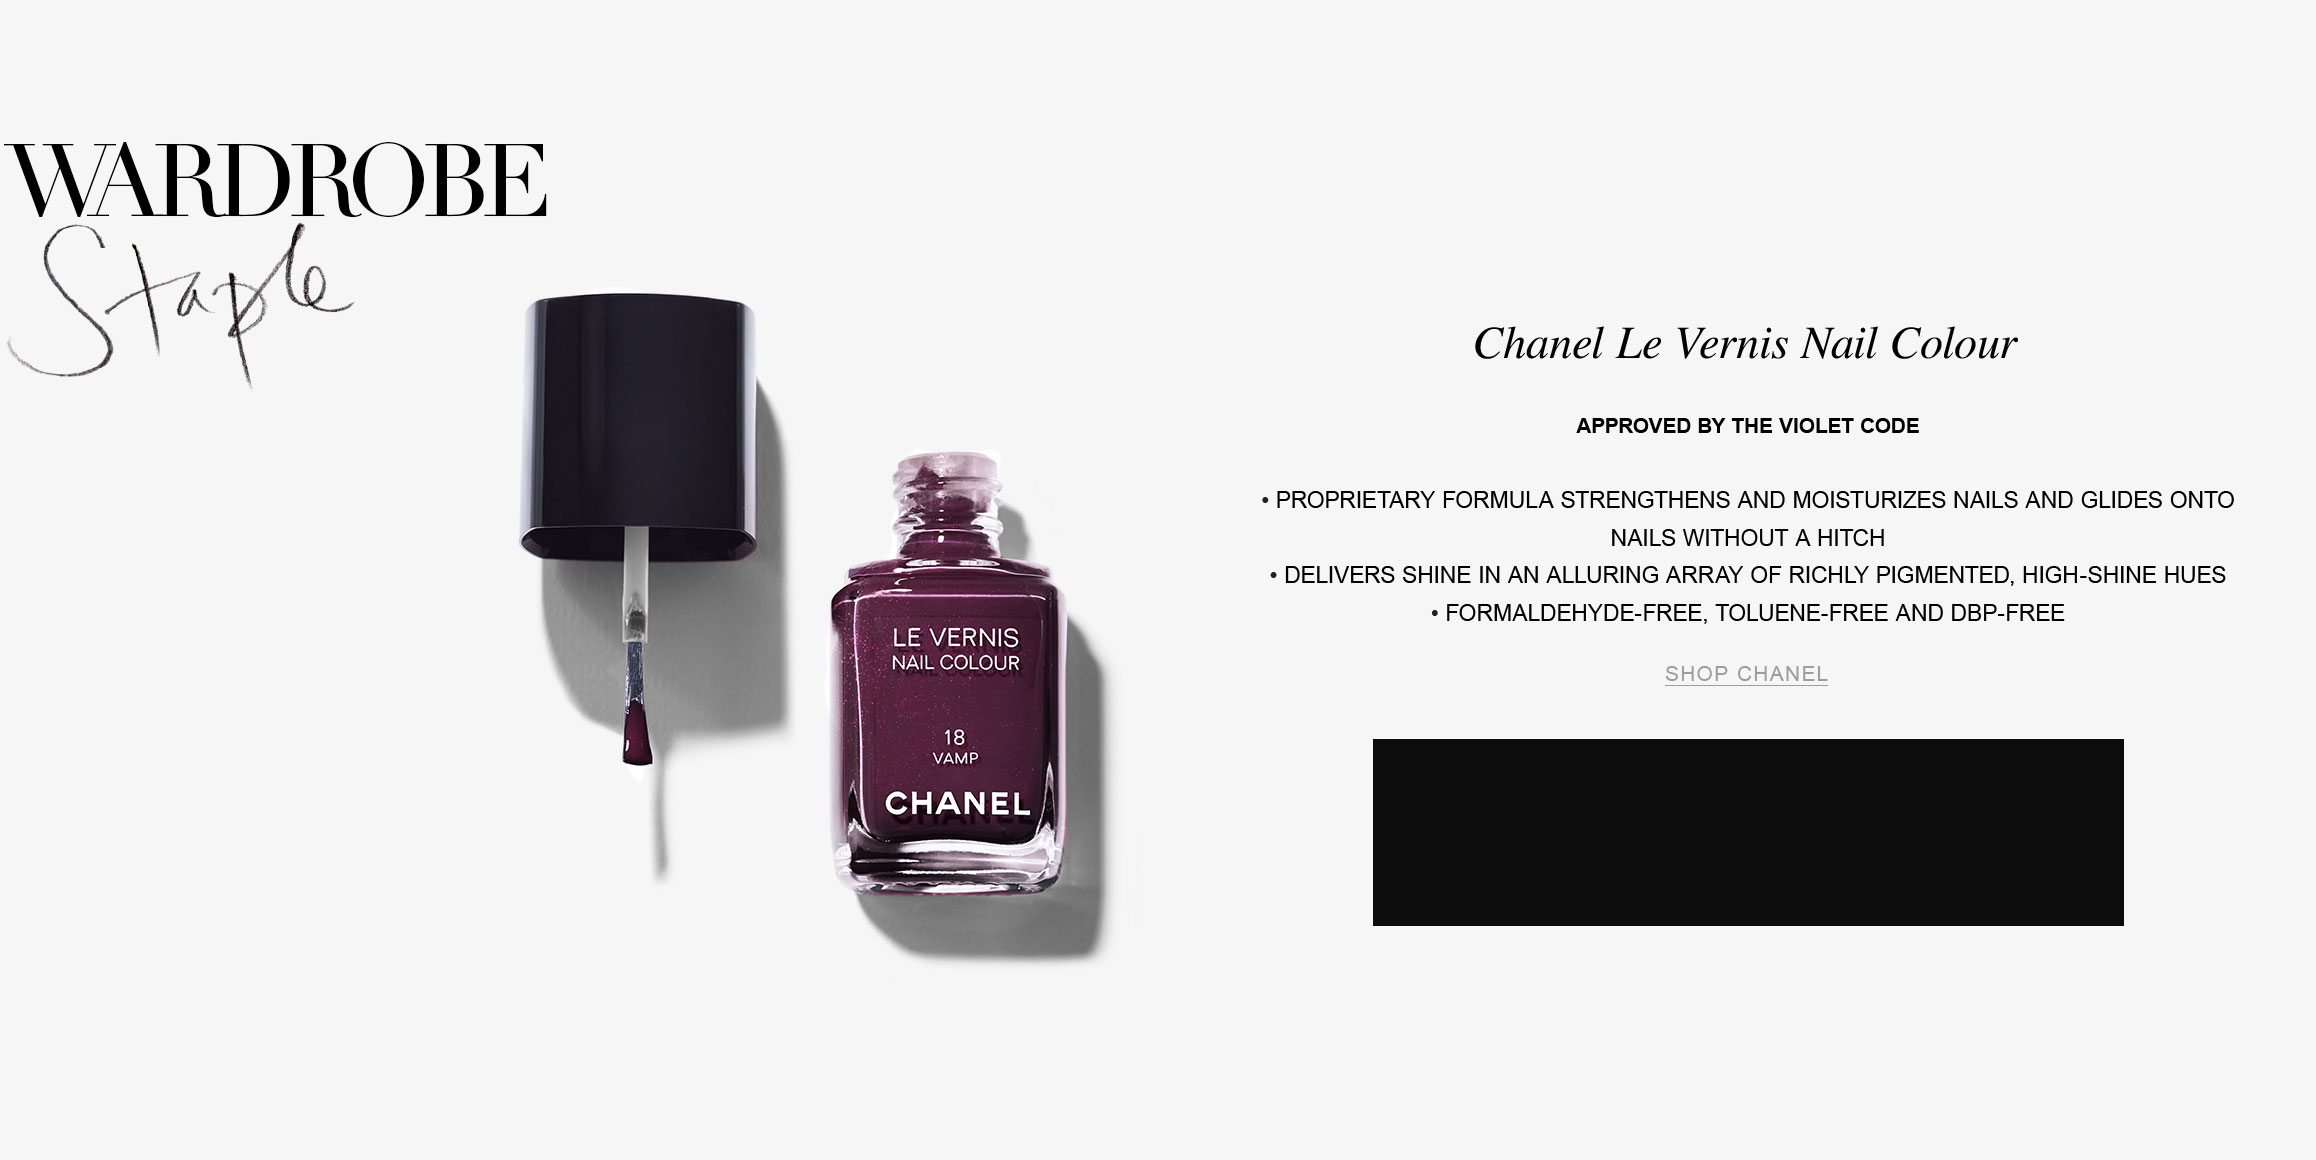 CHANEL-LE-VERNIS-NAIL-COLOUR-Interstitial.jpg